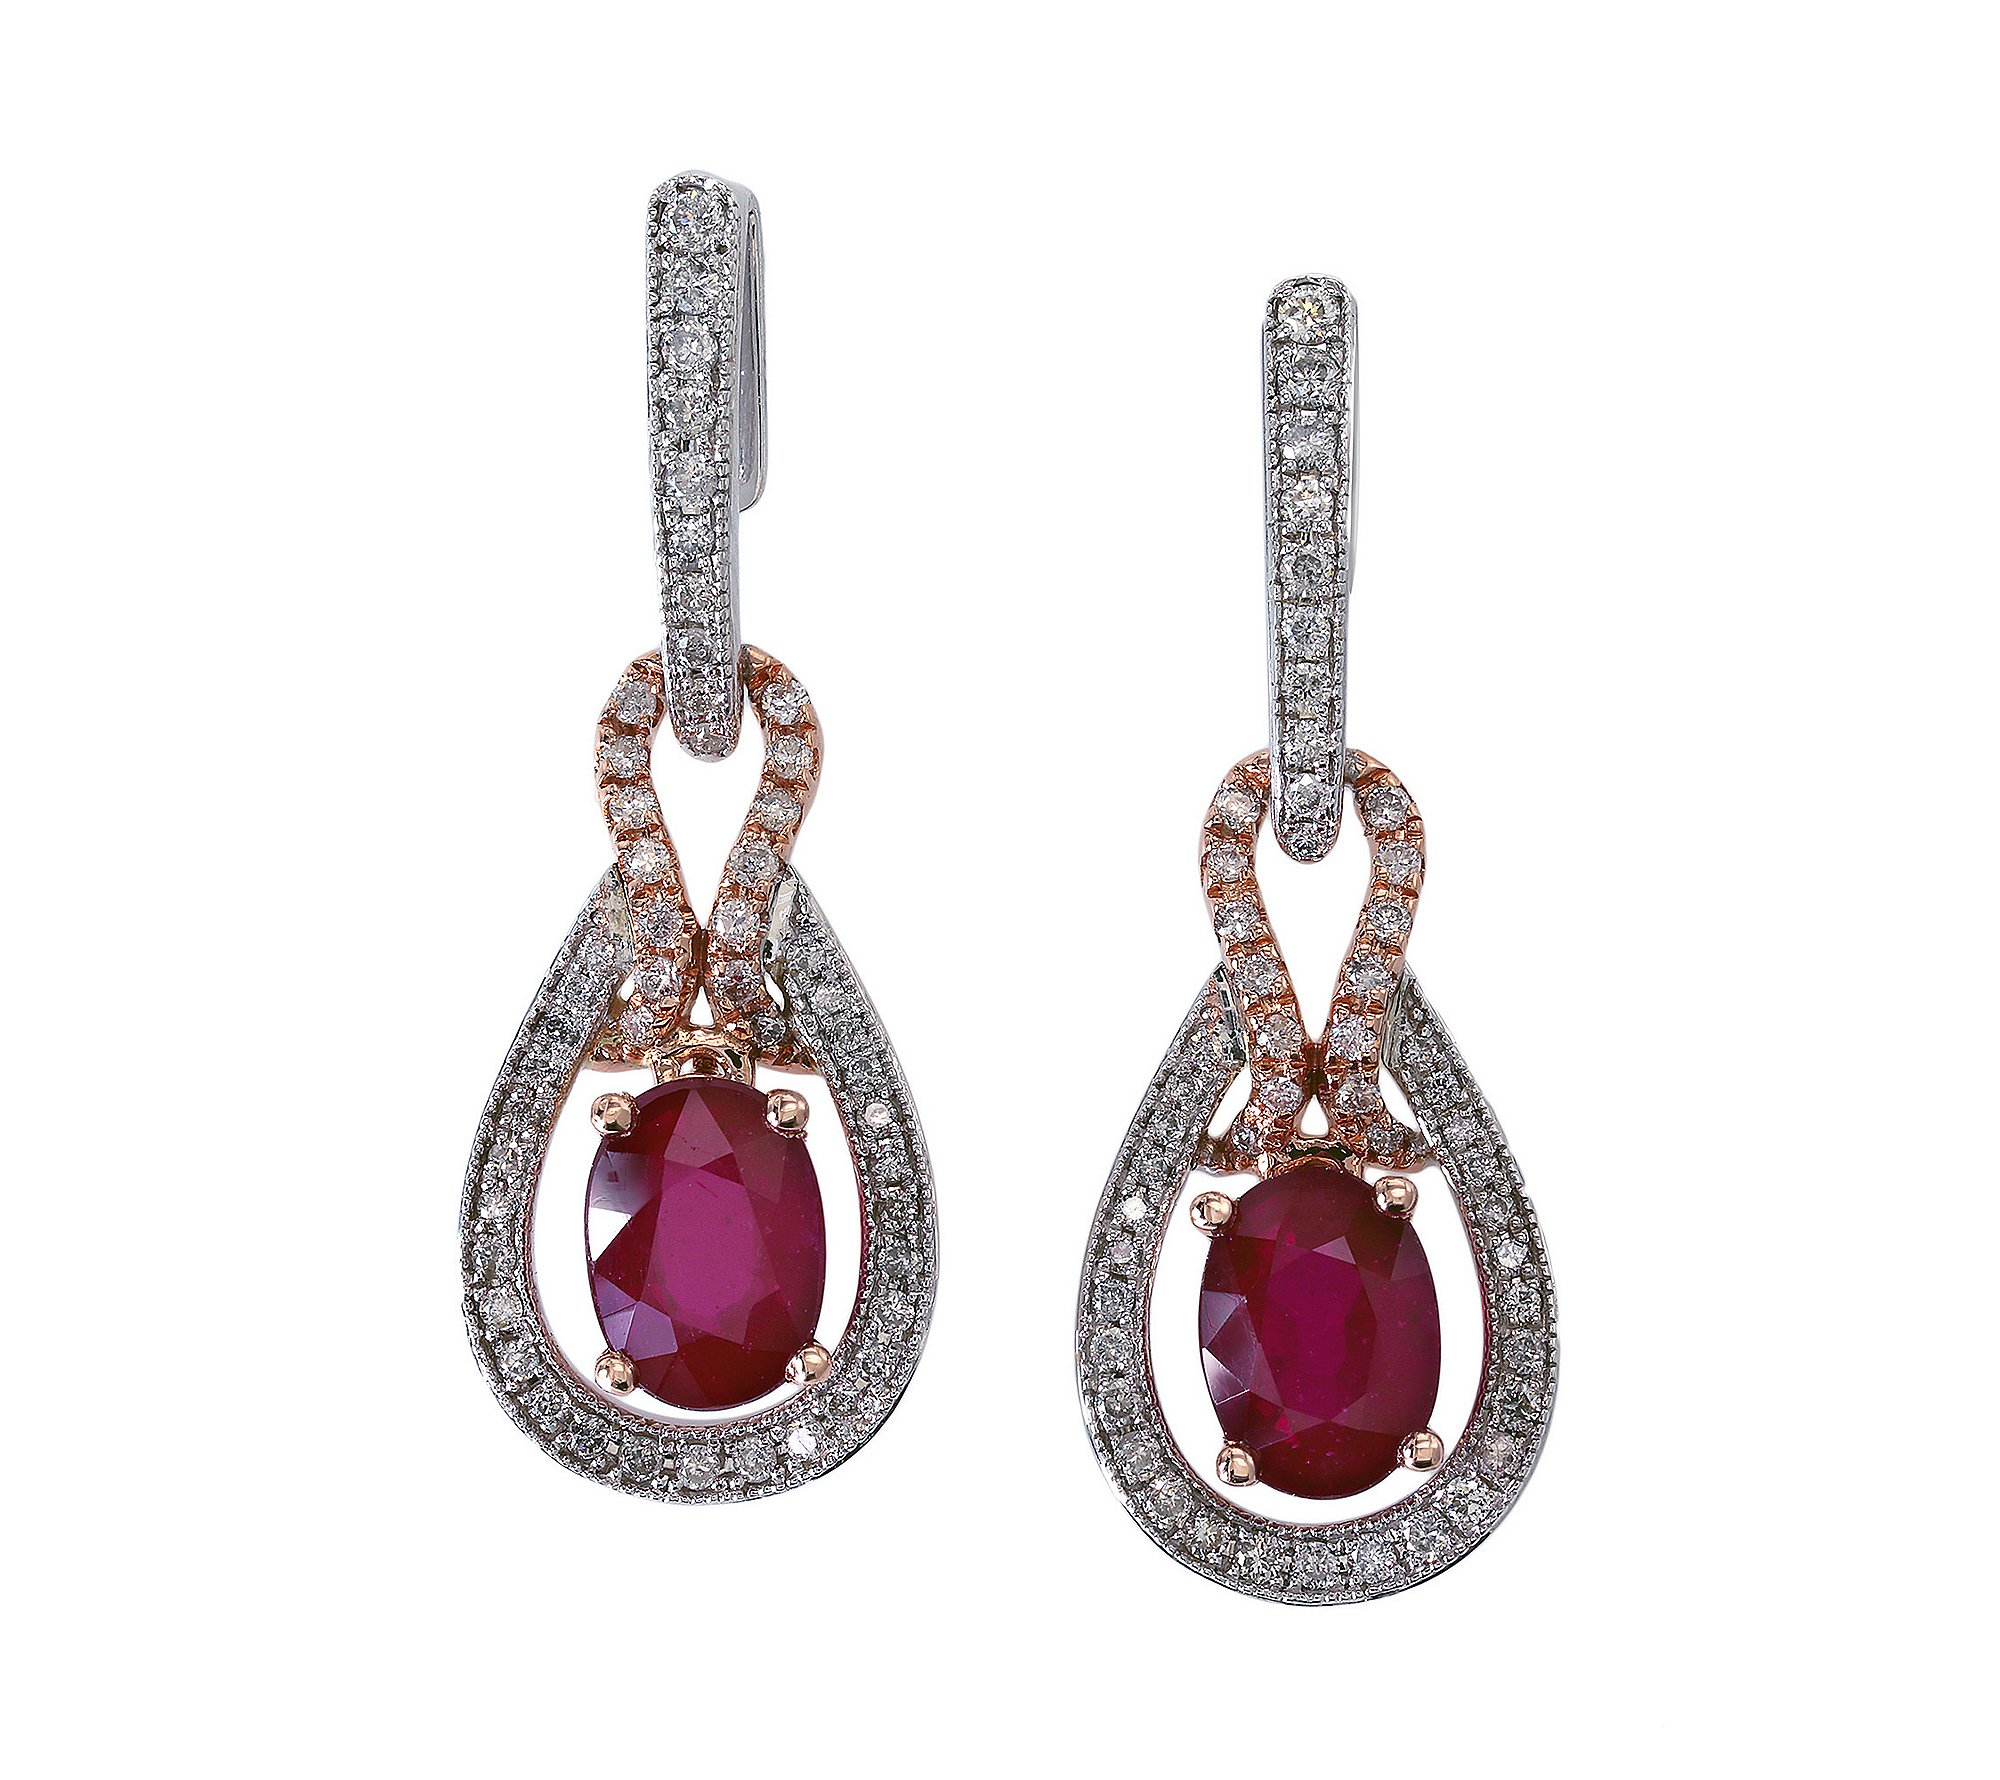 Effy Lead Glass-Filled Ruby and .40 ct. t.w. Diamond Earrings in 14K White & Rose Gold by Effy